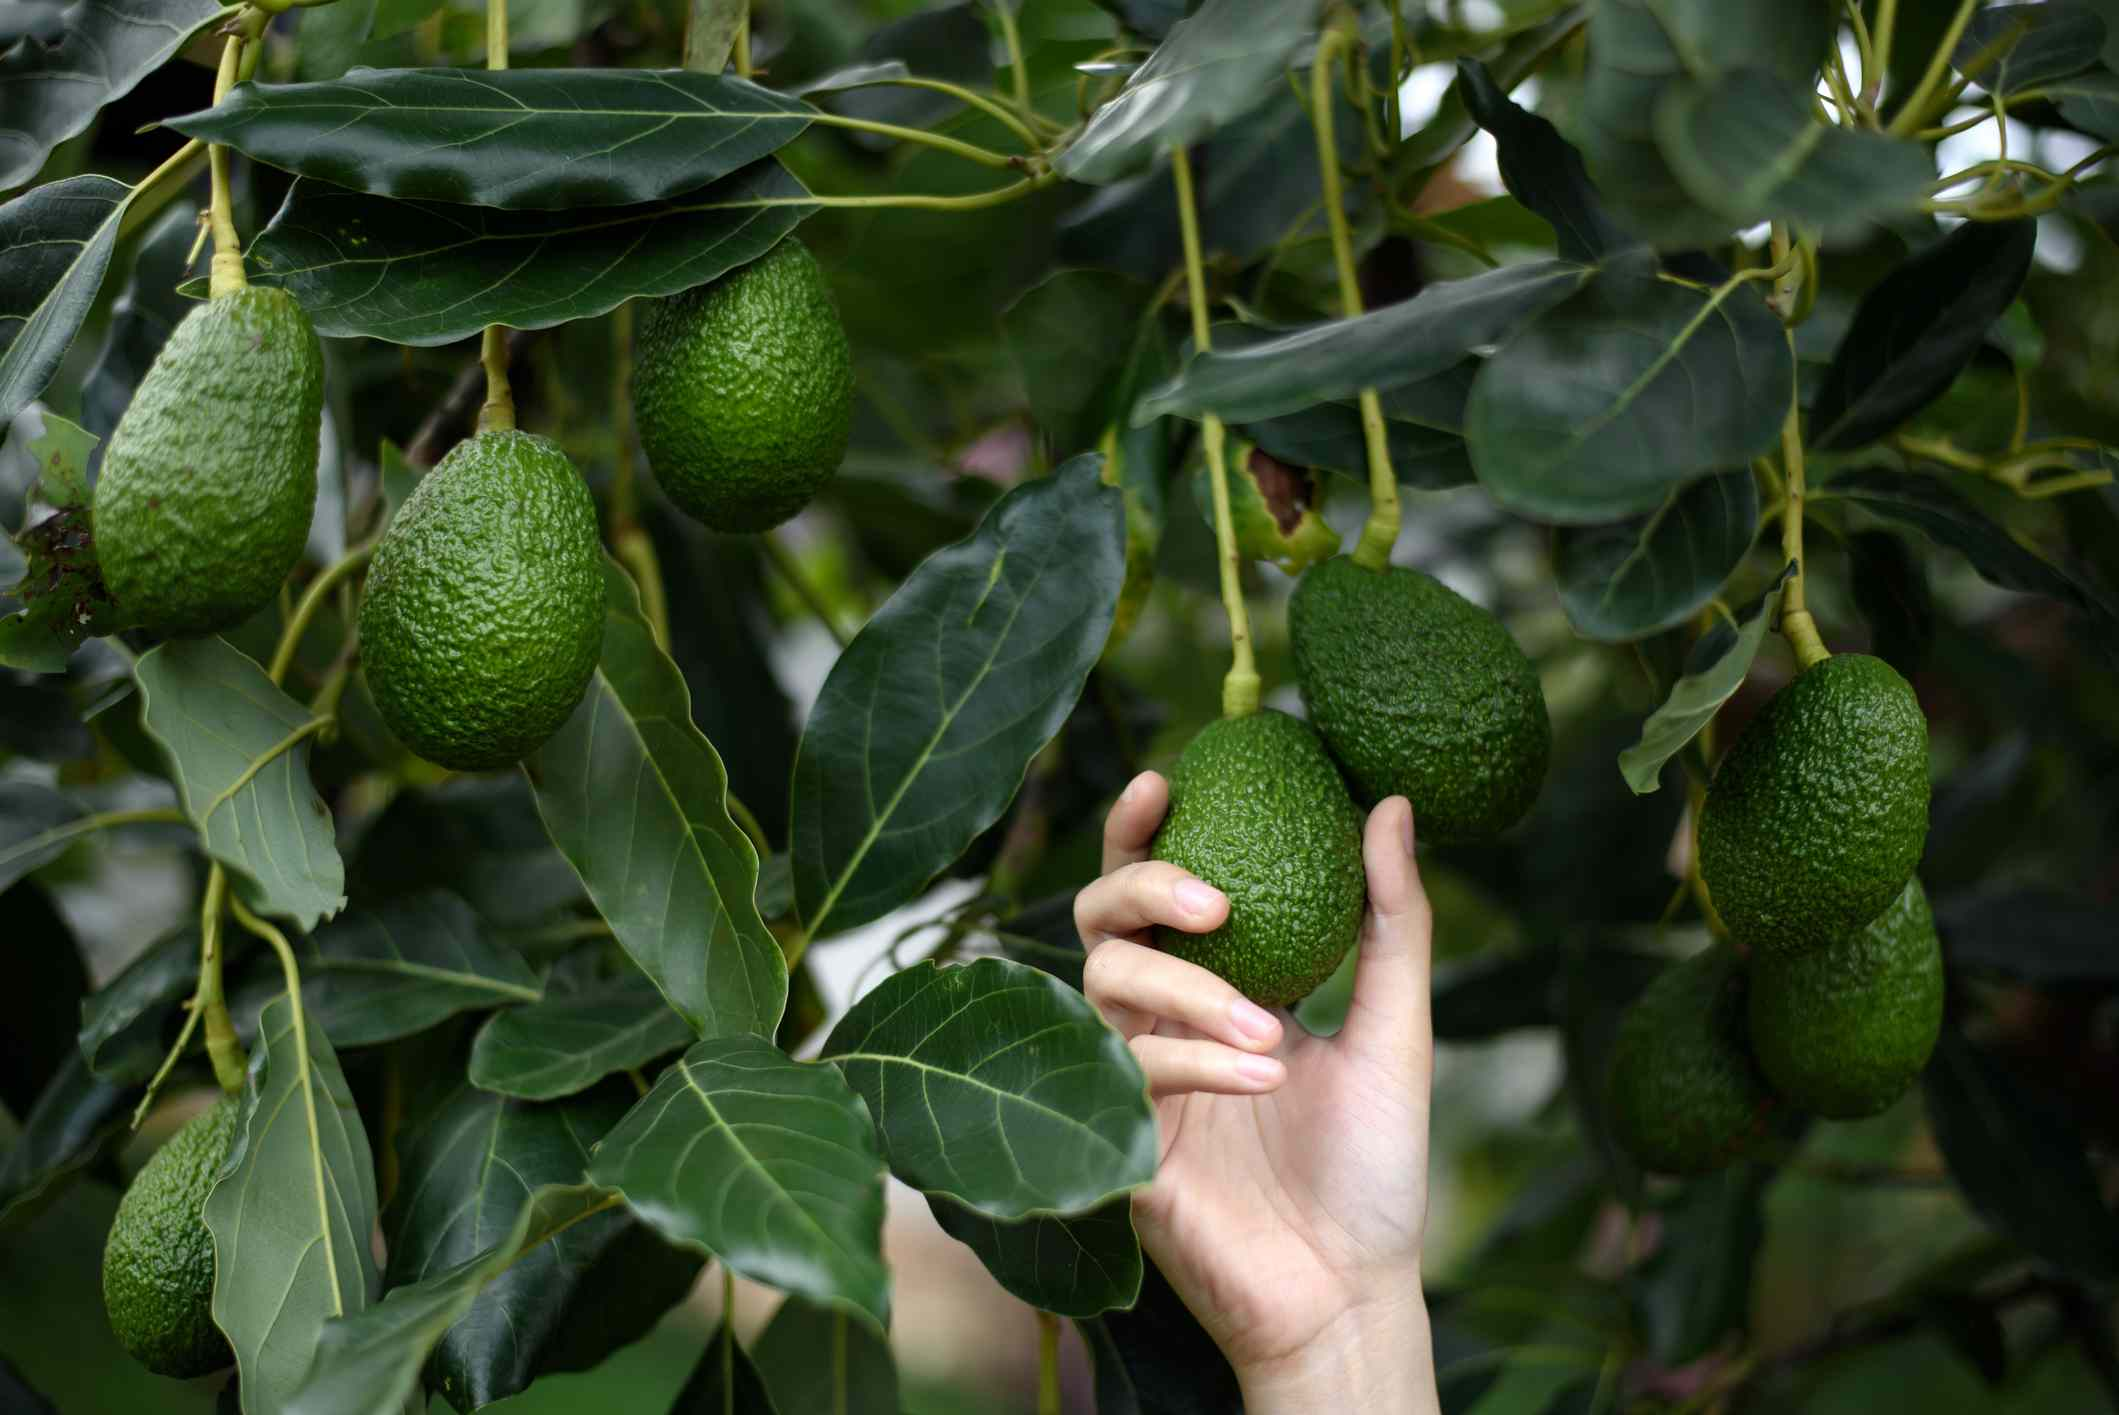 A white hand picking an avocado off a tree.